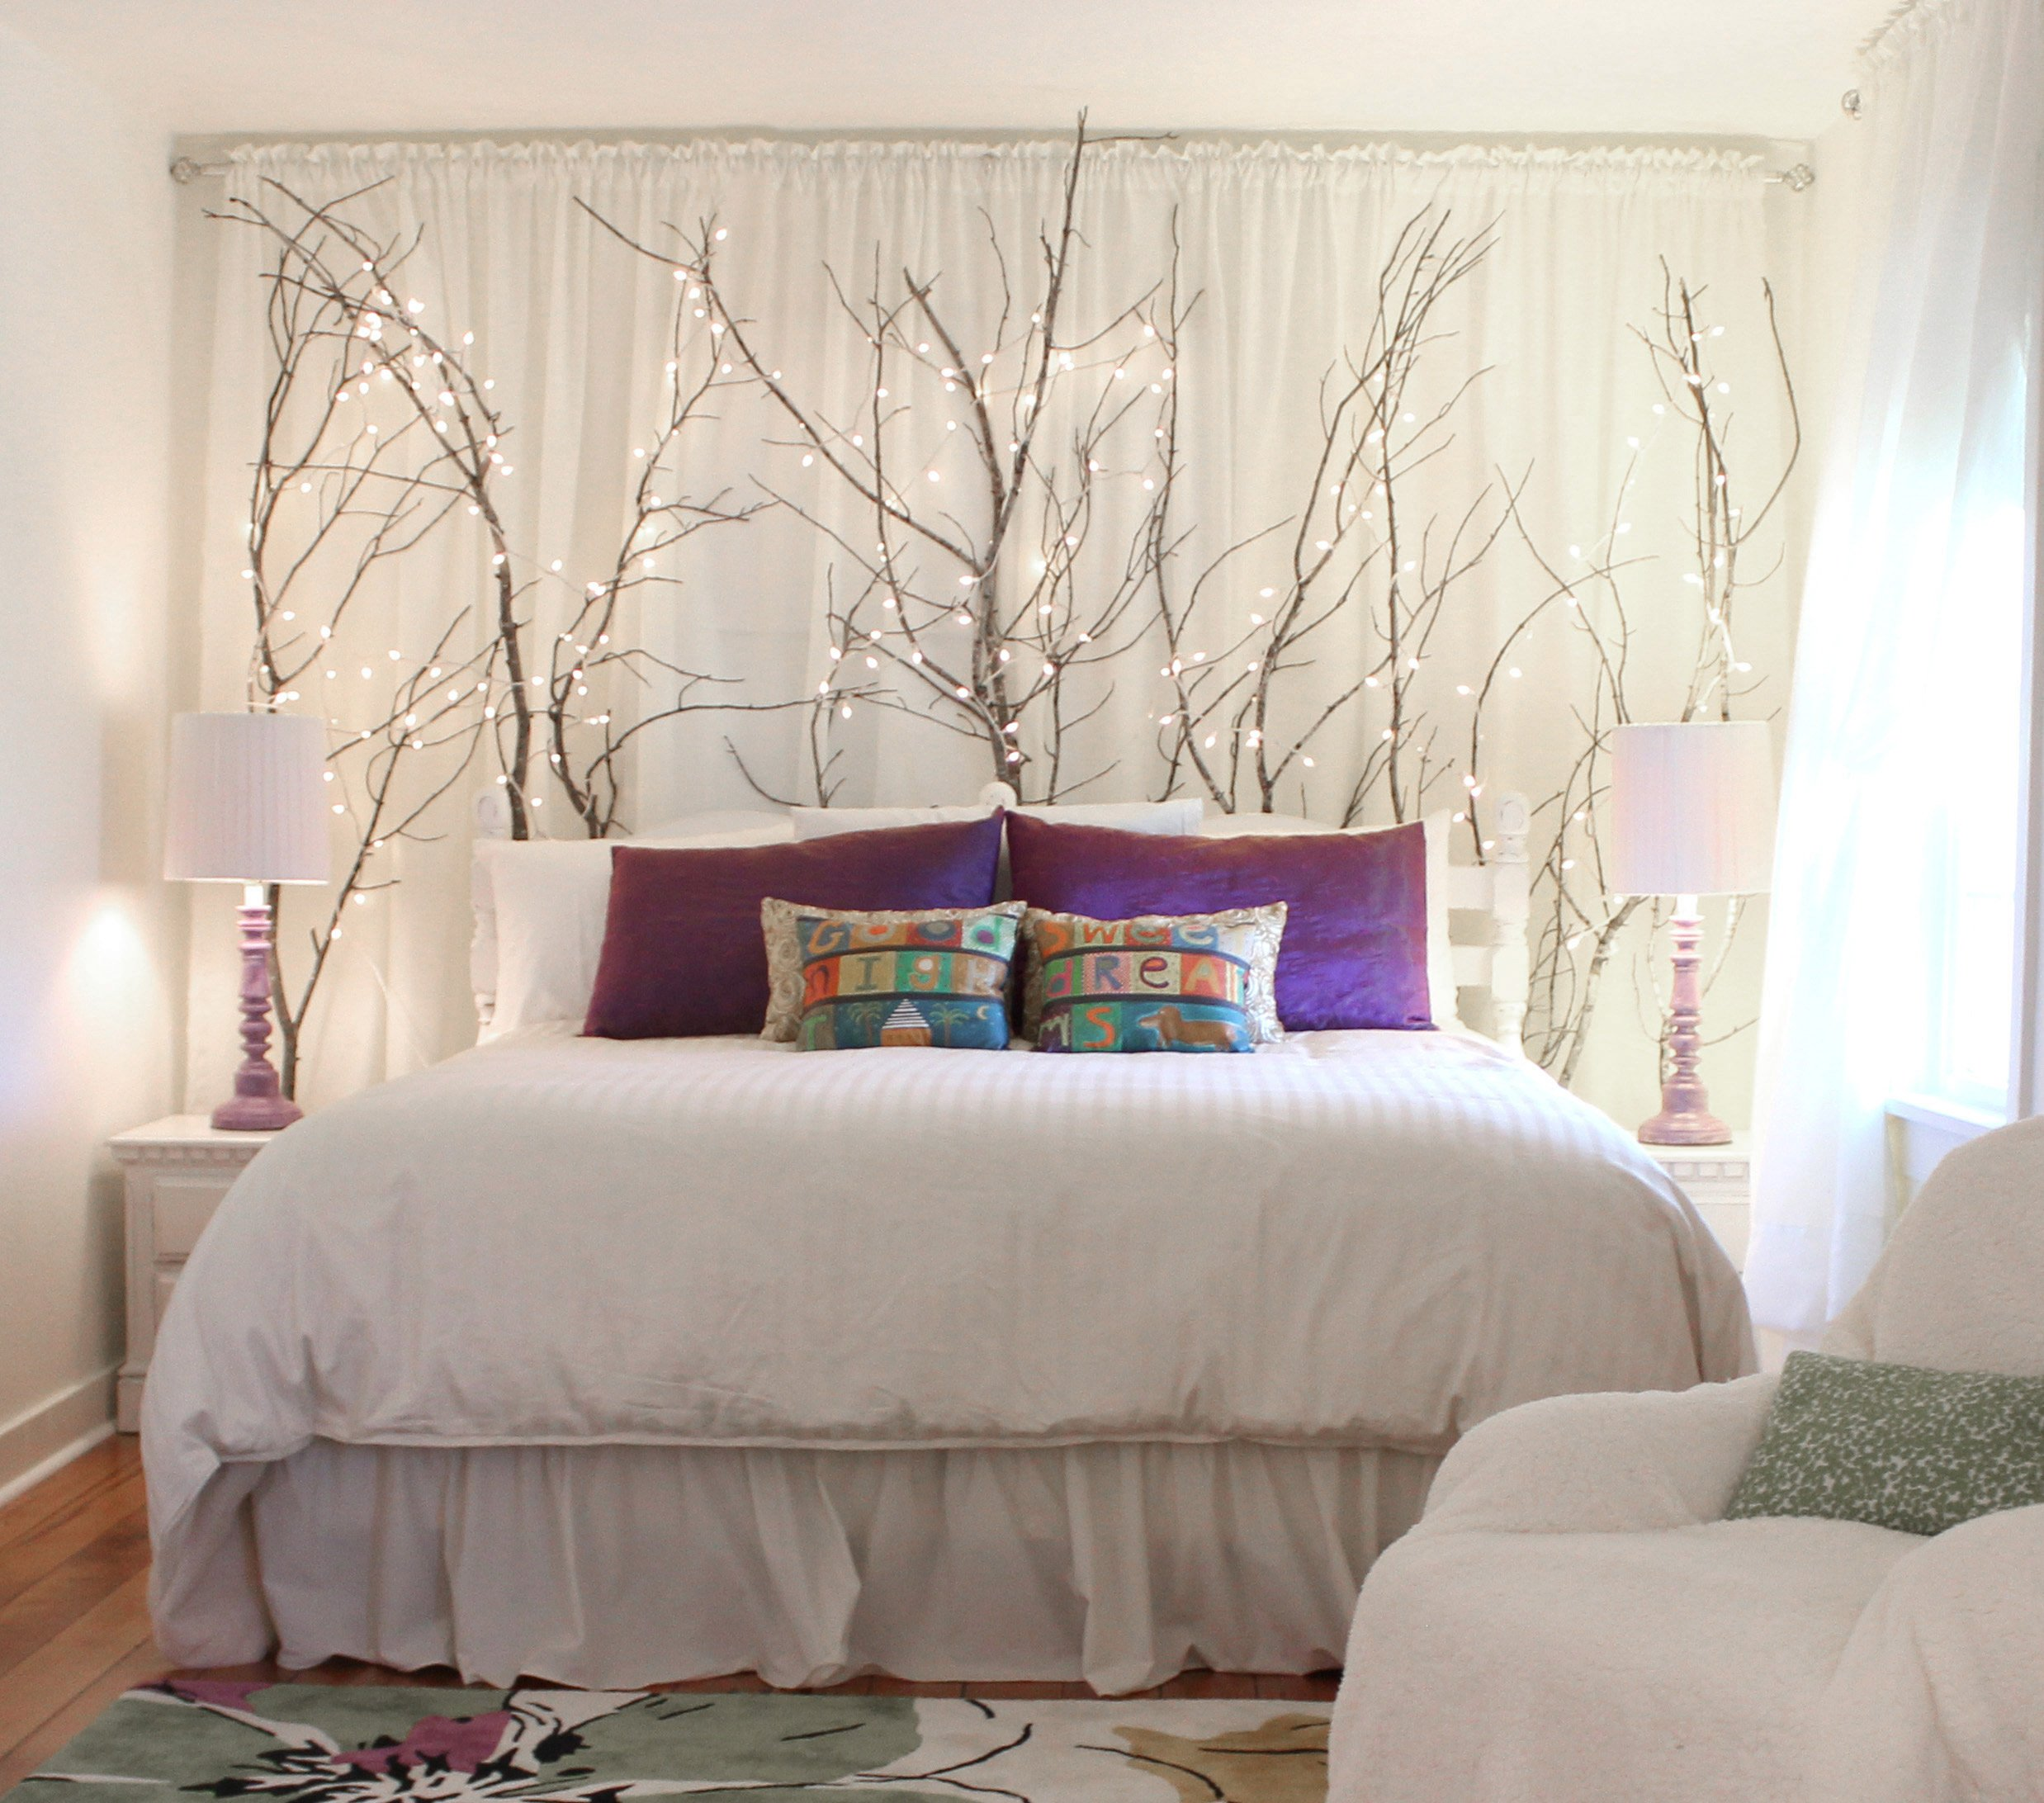 Décoration Murale Branches Creating Indoor Woodsy And Whimsy With Ceiling Branches